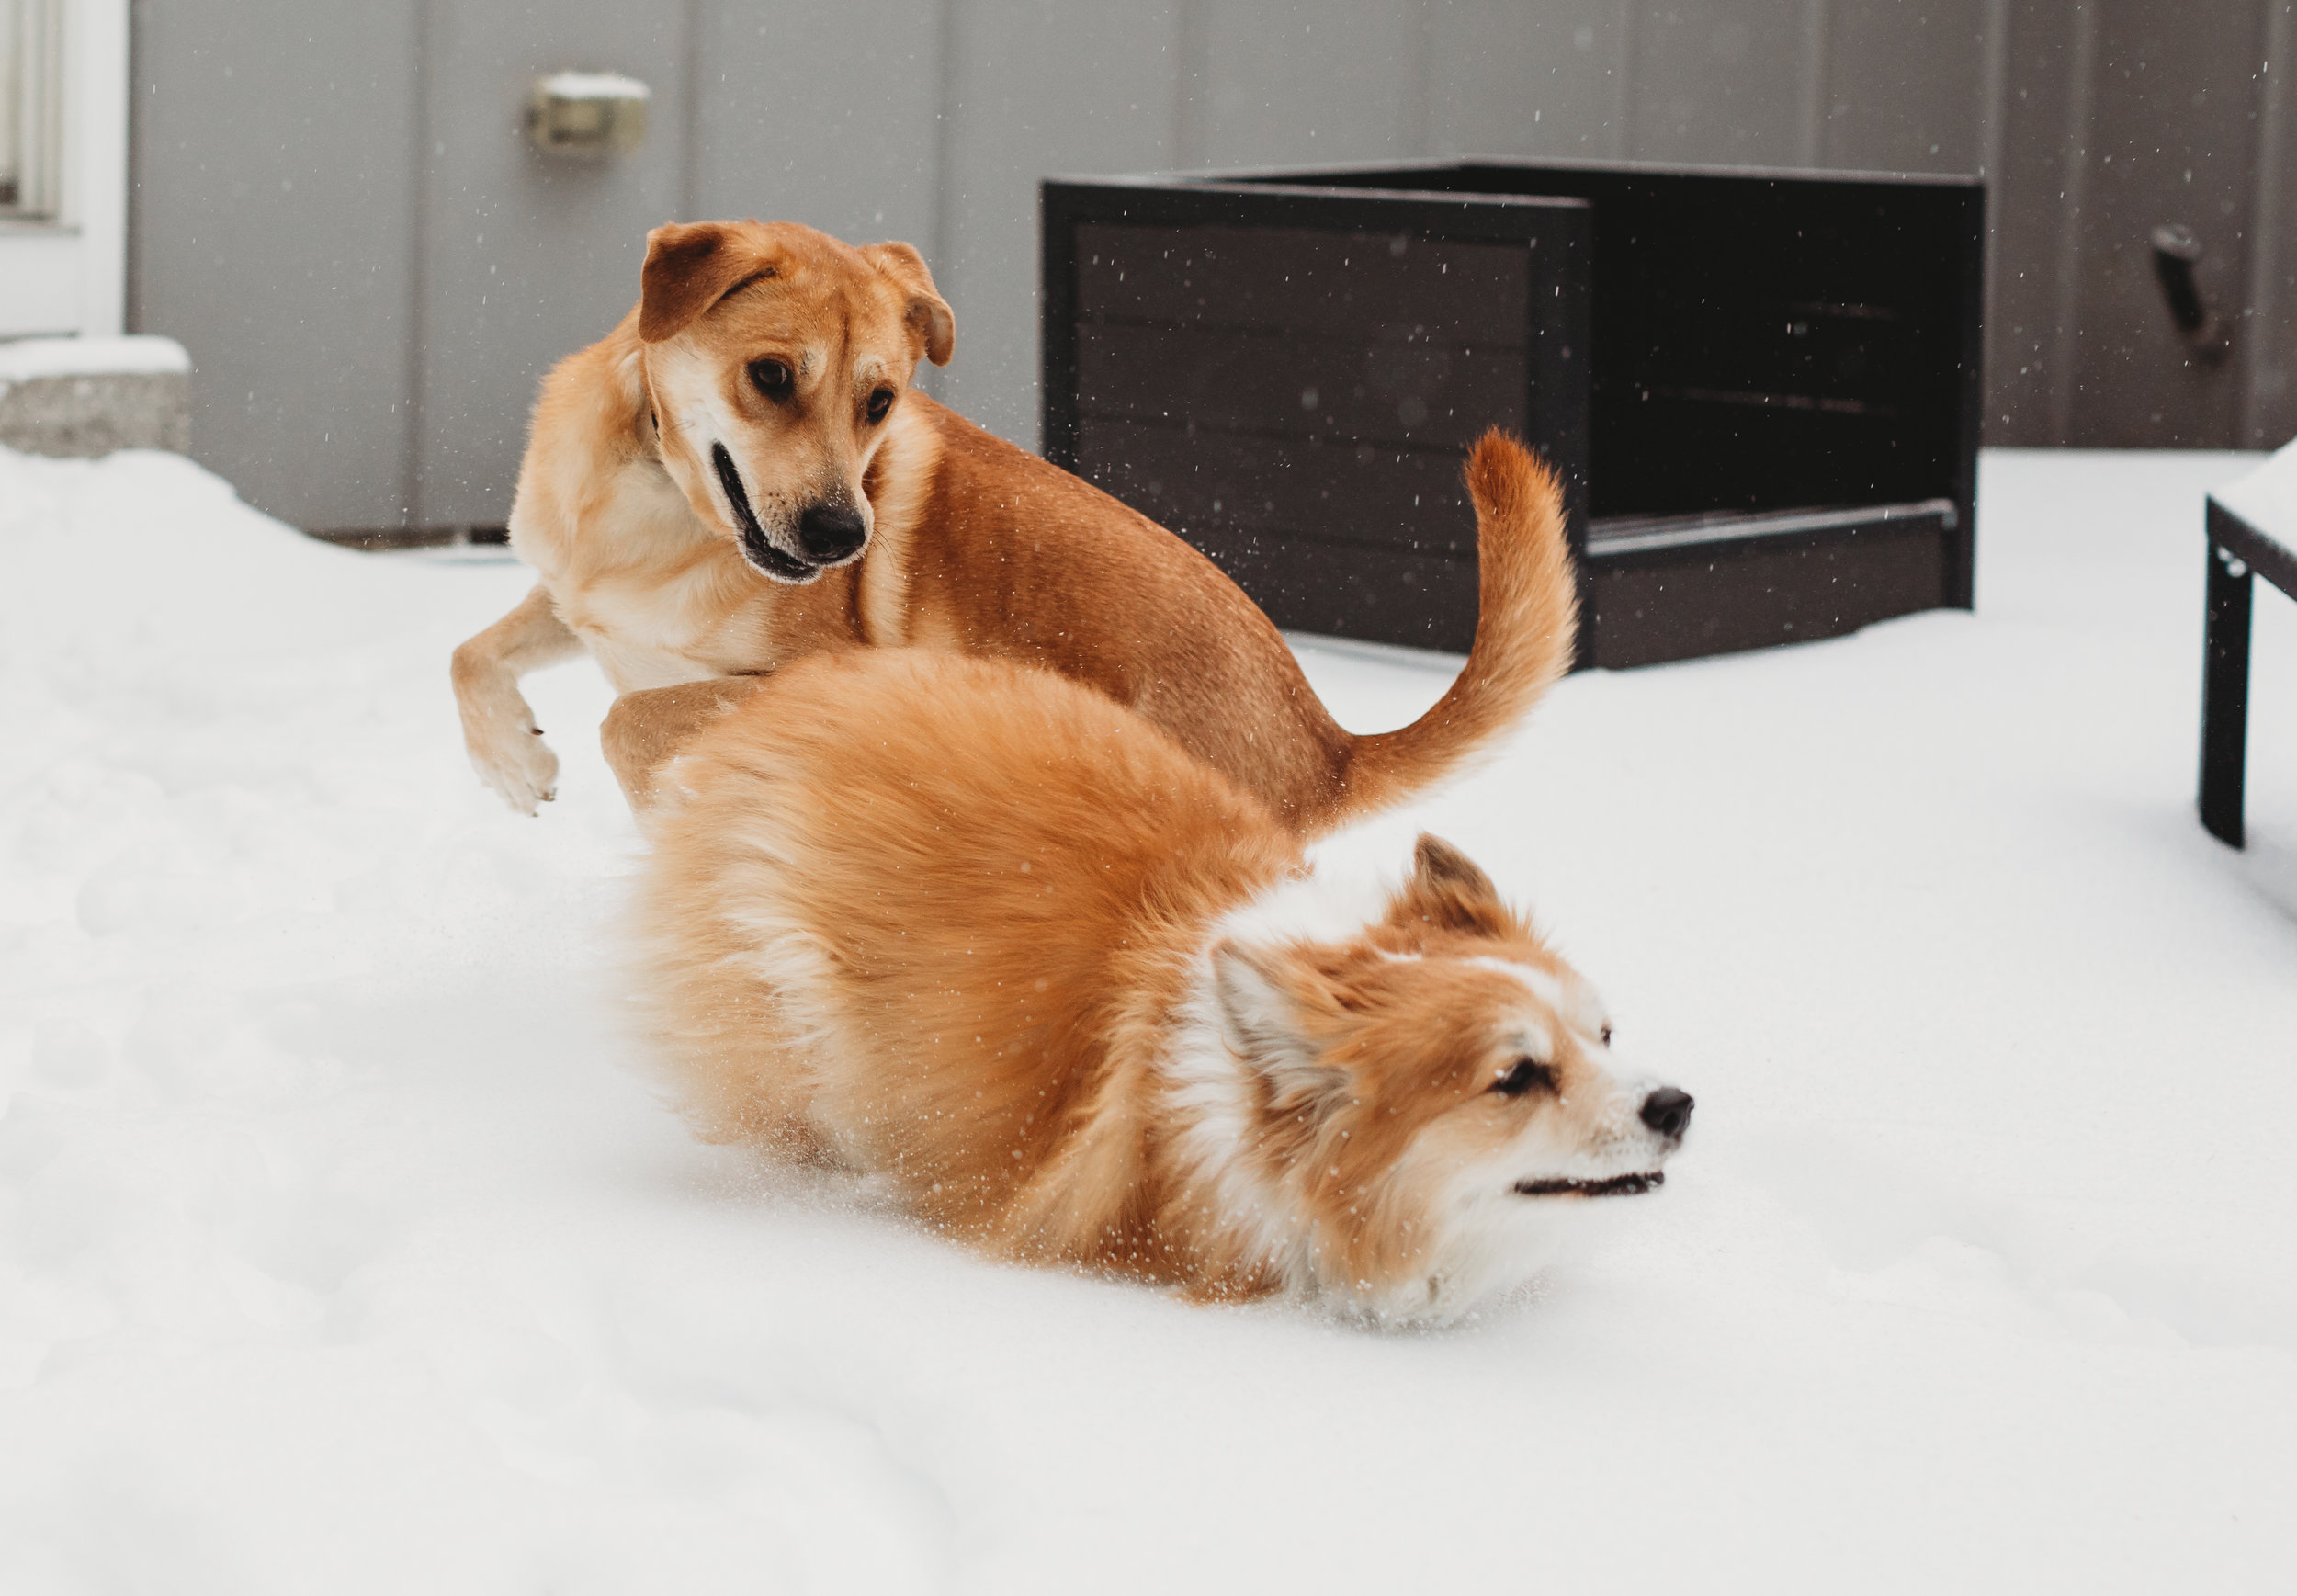 Kona and Louie playing in the snow! Kona has her winter coat. Fluffy corgi, rescue dog. Boston photographer.